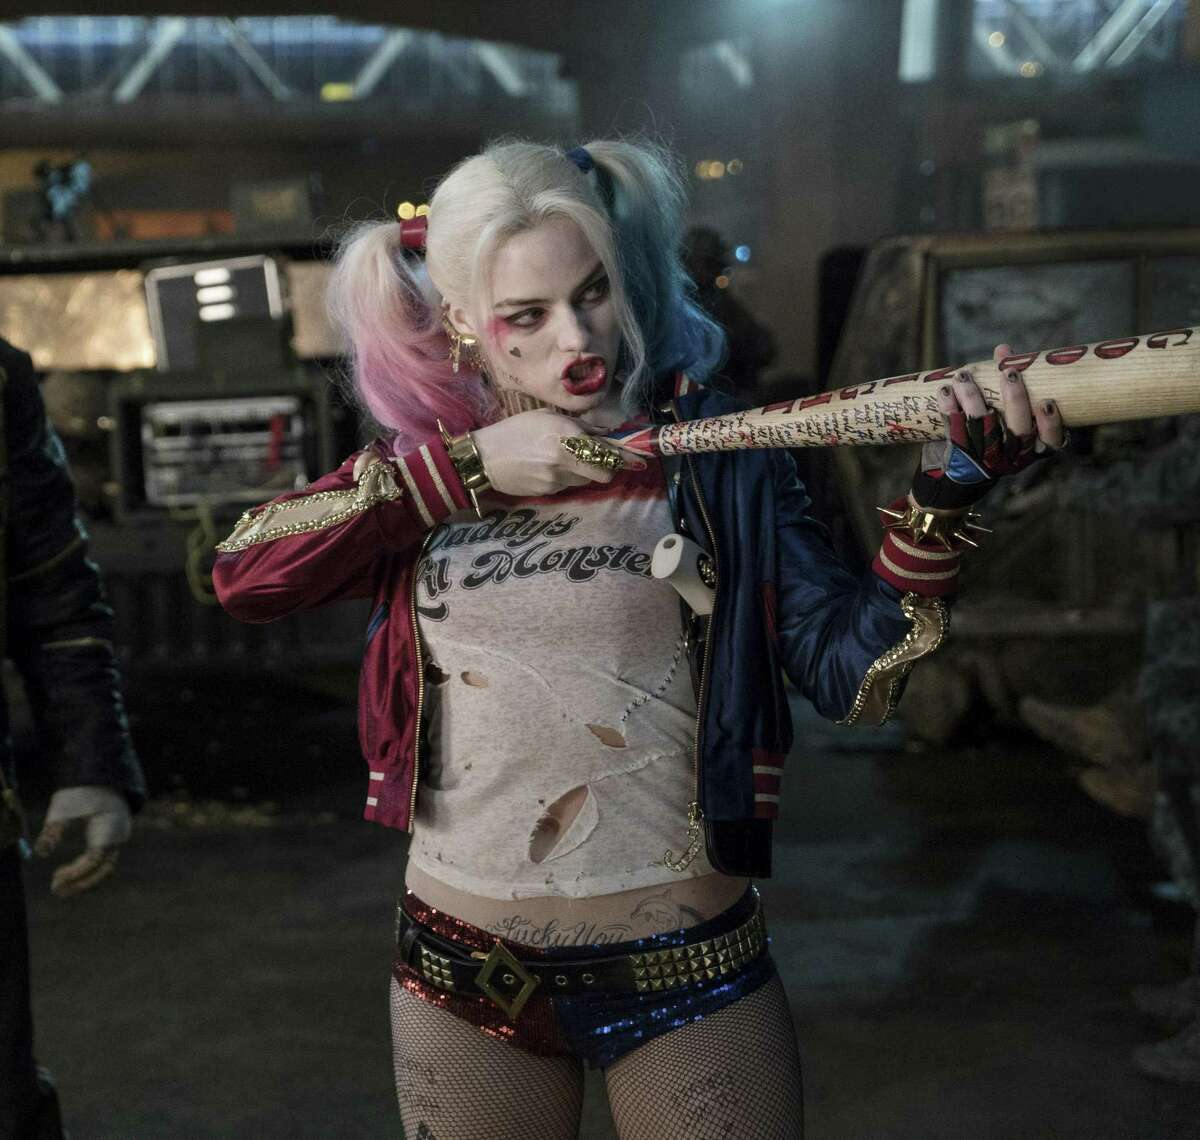 """1. """"Suicide Squad"""": This DC comics answer to Marvel """"The Avengers"""" was two hours of soul-sick confusion and sensory torment, which featured a new innovation: It played pop songs, lyrics and all, not between scenes, but during scenes, so that half the movie-theater speakers competed with the other. That, plus all the flashbacks and flash forwards, and a last hour that was like being trapped inside a video game you could watch buy not play, made this a mild form of torture. And the curious thing is that it was directed by David Ayer, who wrote """"Training Day"""" and wrote and directed """"Fury."""" Sometimes it takes a genuine talent to make something really horrible."""